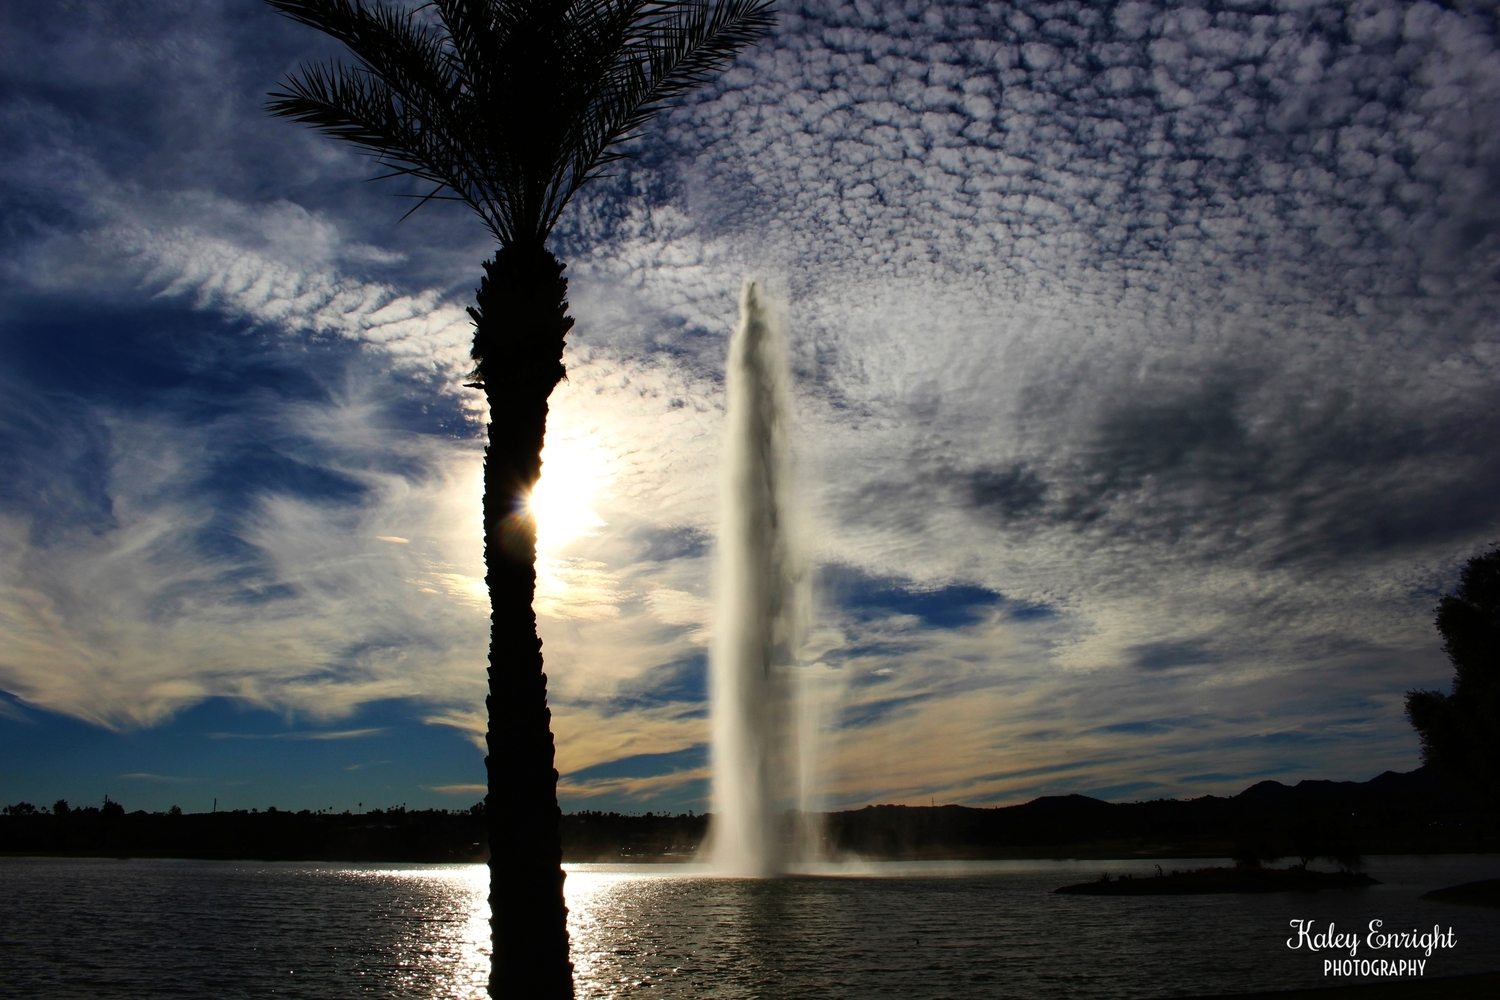 fountain hills kaley enright.jpg